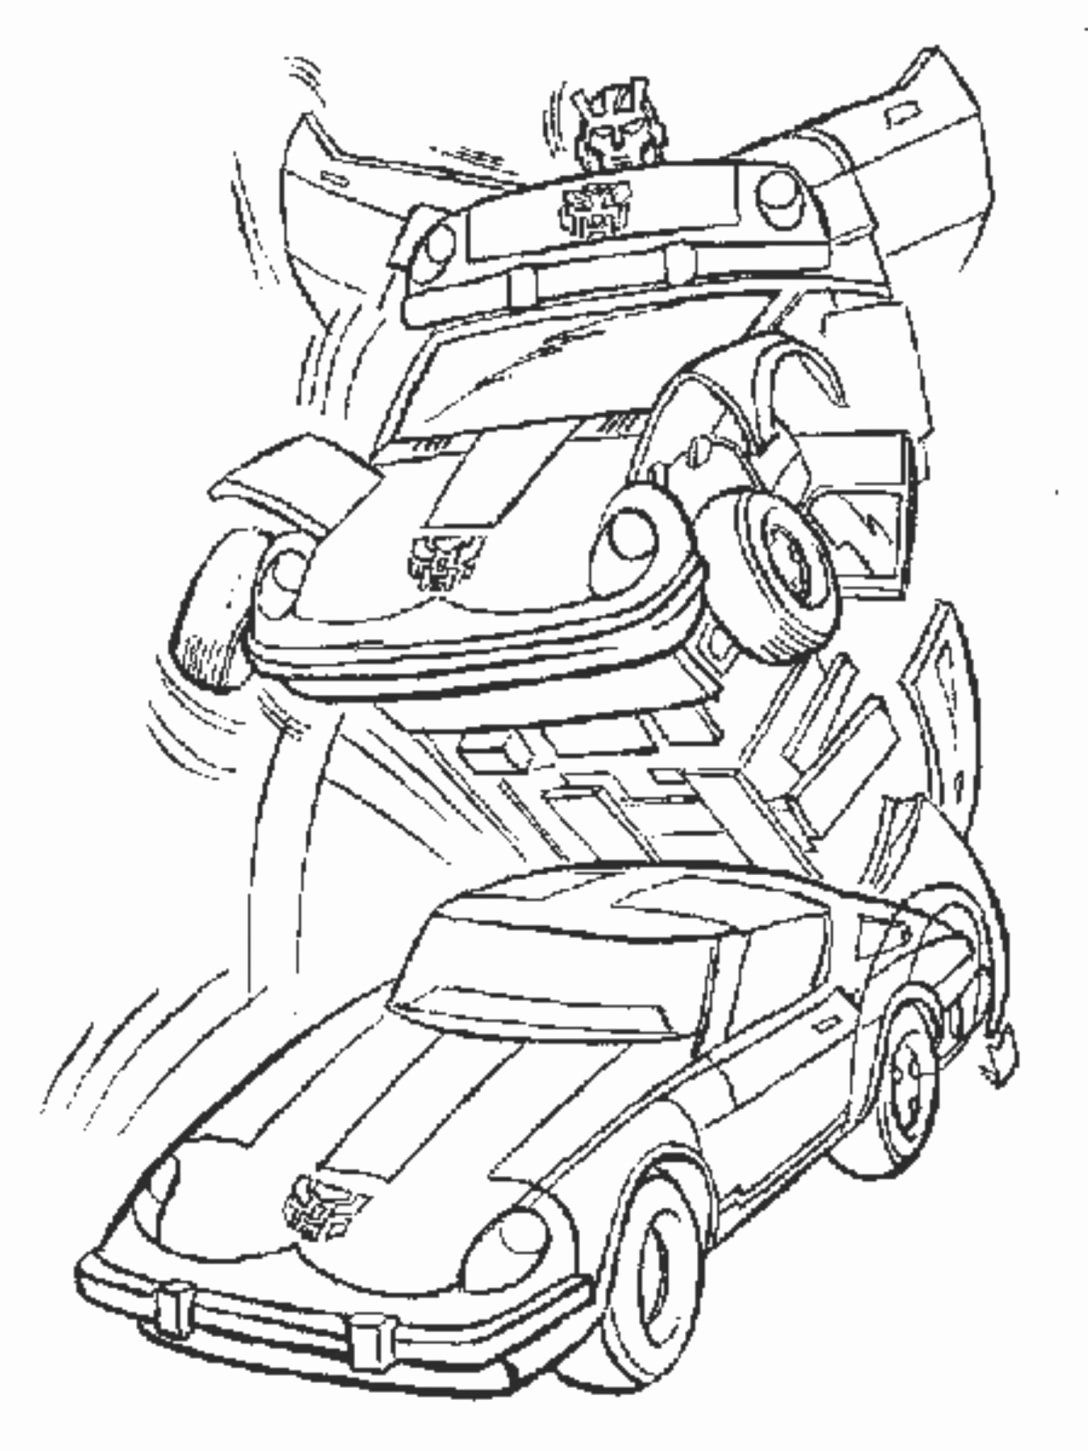 Printable Race Car Coloring Pages Lovely Lets Coloring